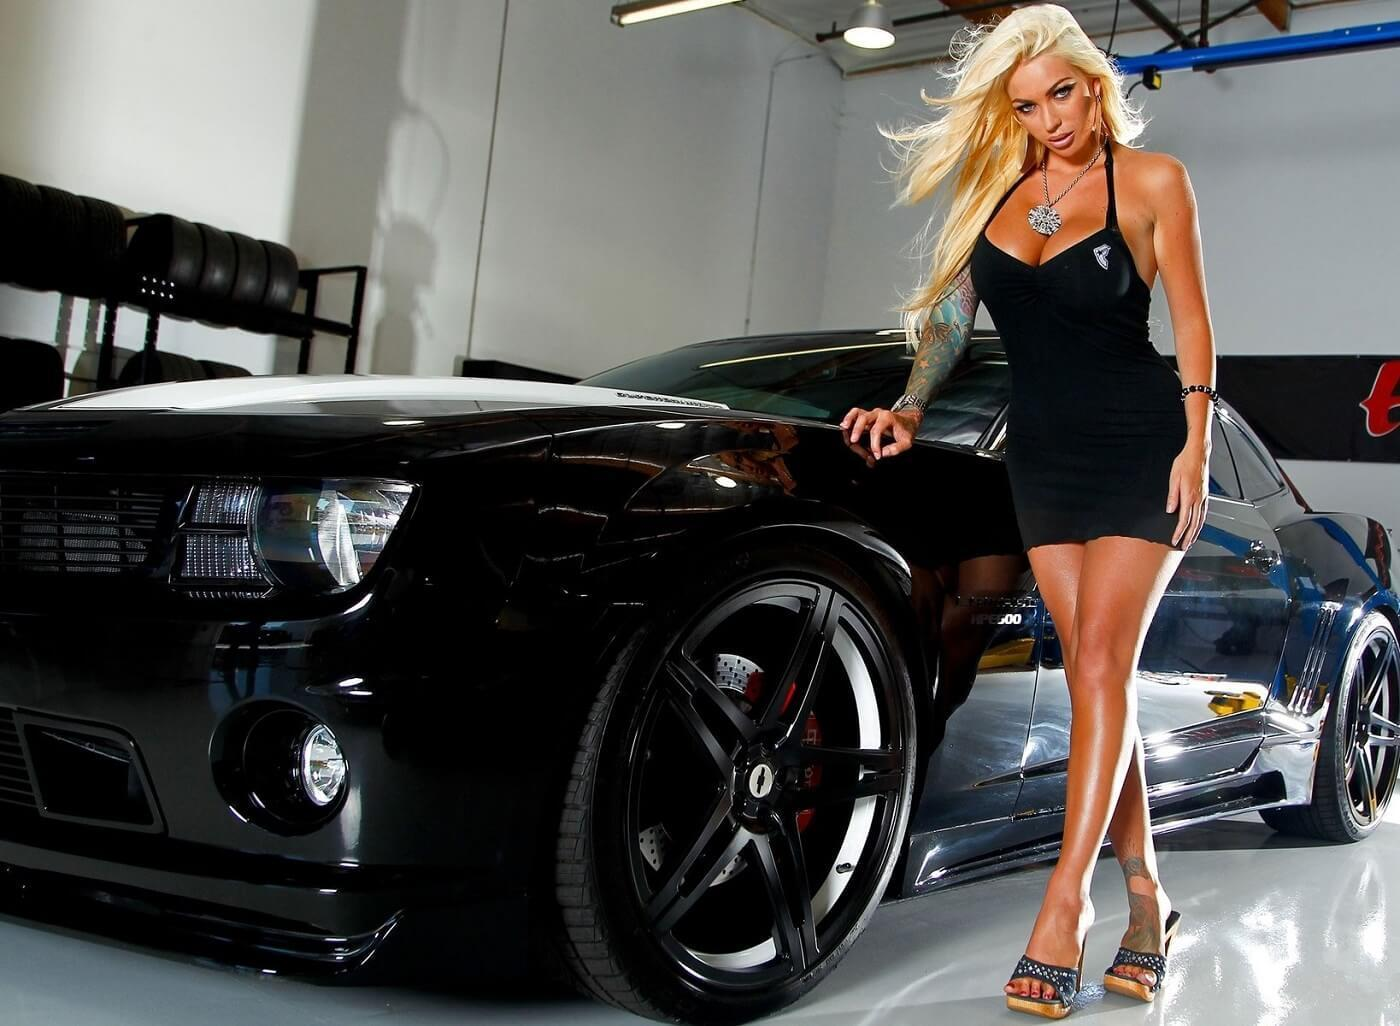 Car Girls Wallpapers For Android Apk Download